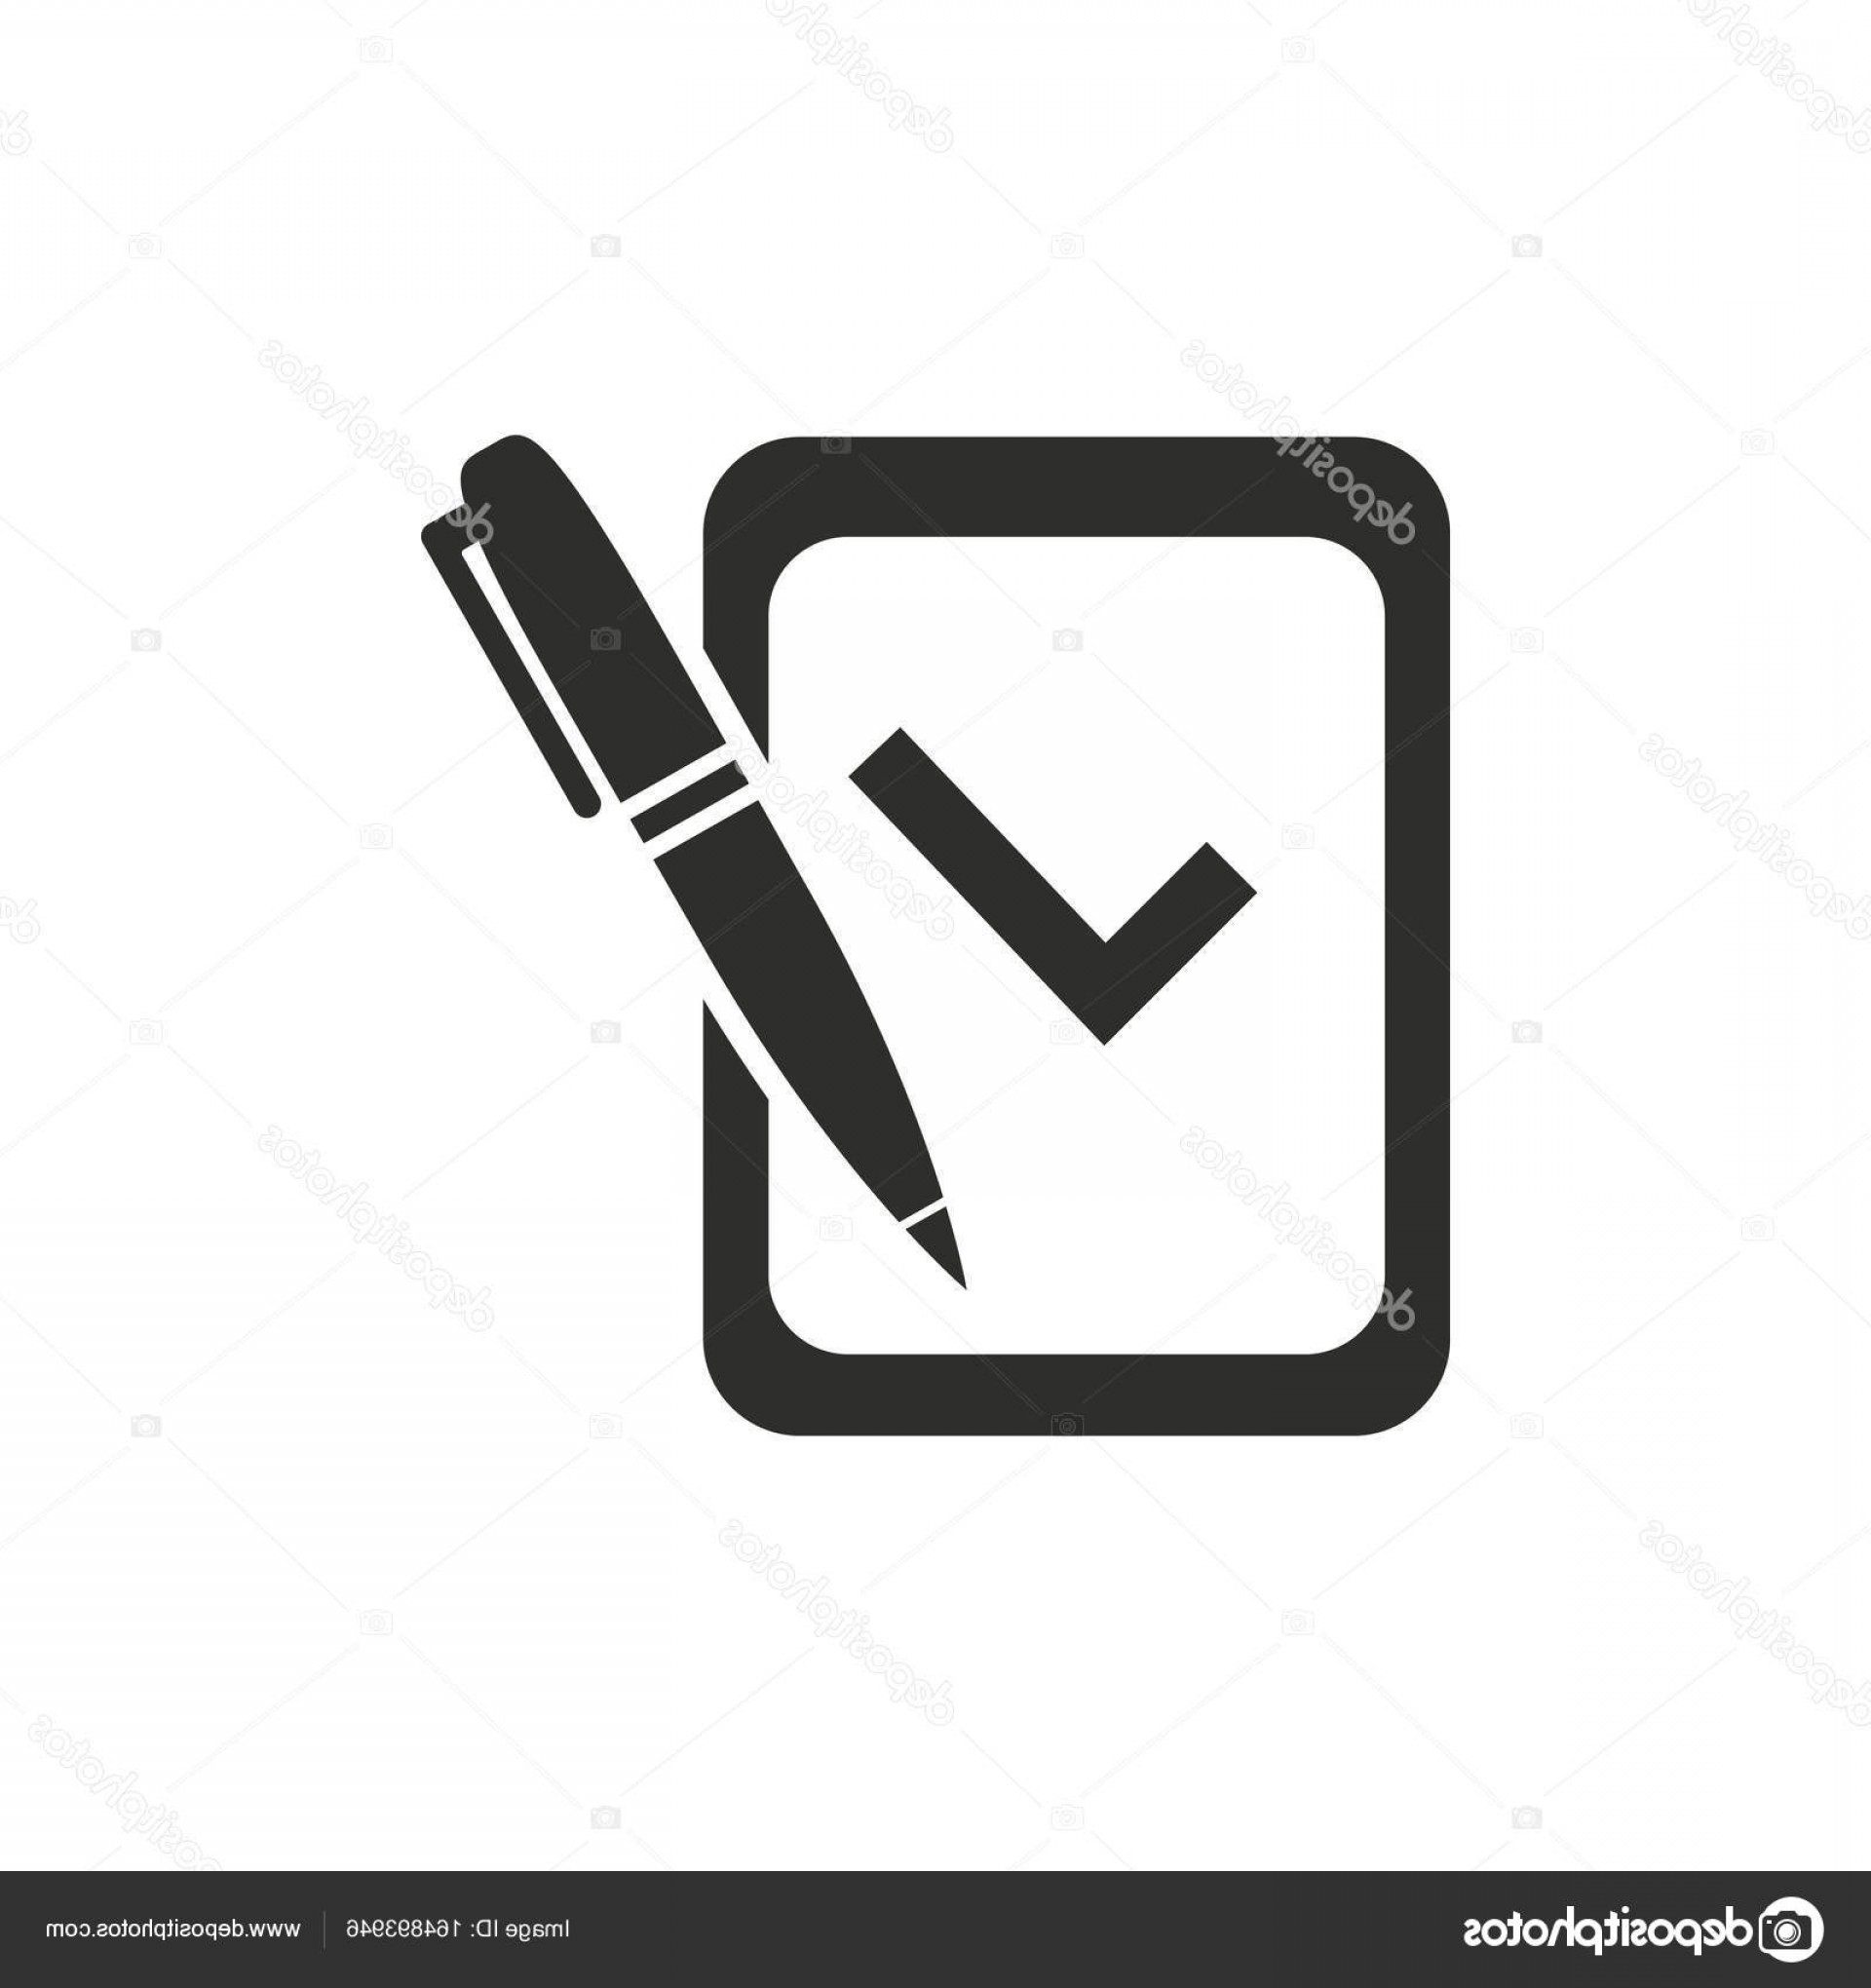 Vector Application Form: Stock Illustration Application Form Vector Icon